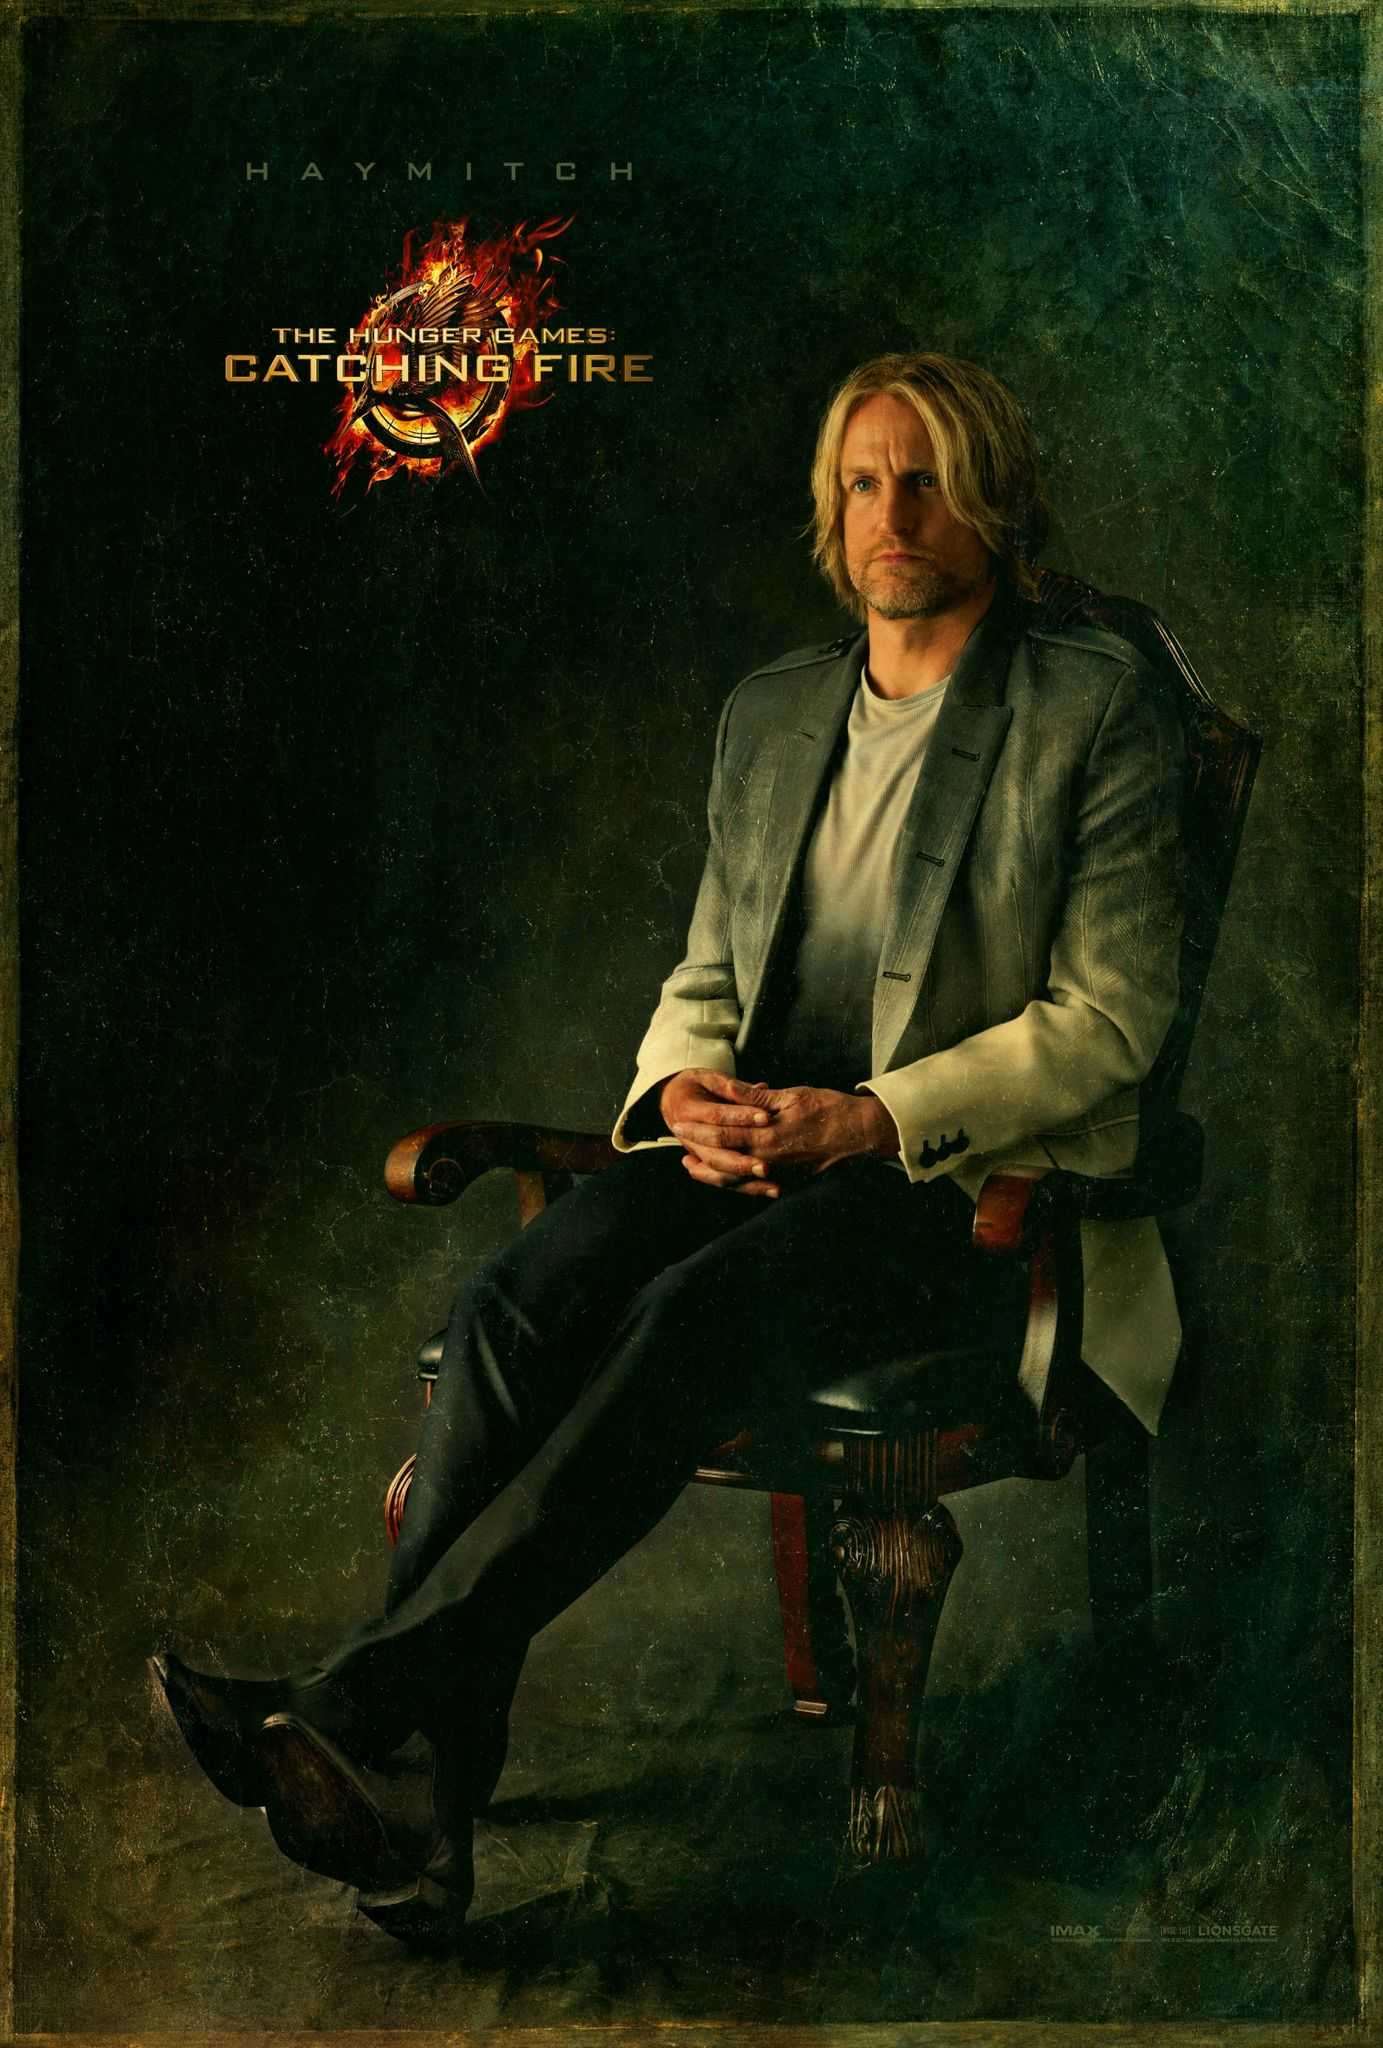 Catching-Fire-capitol-portrait_Haymitch